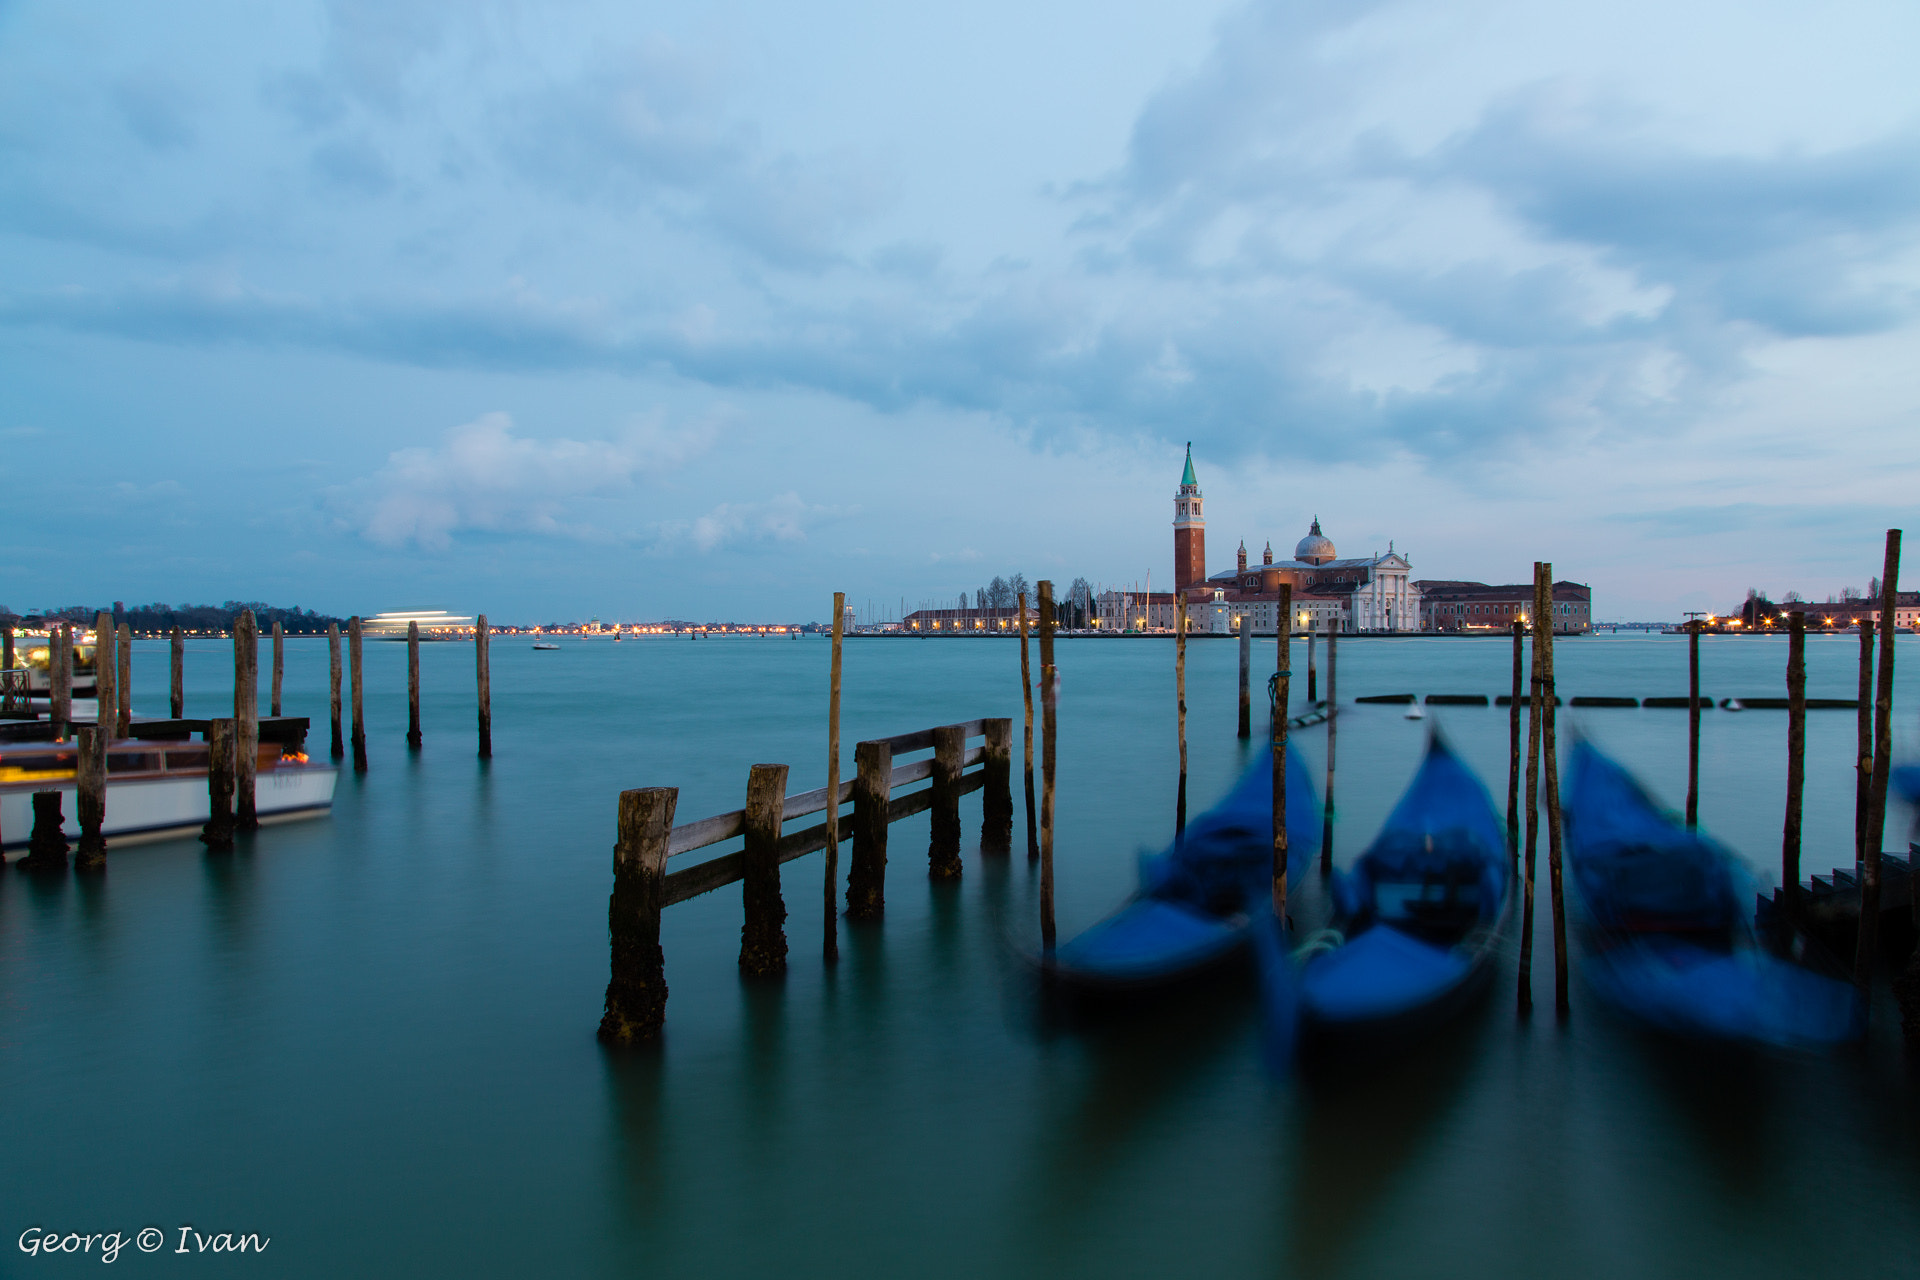 Photograph Venice IV by Georg Ivan on 500px